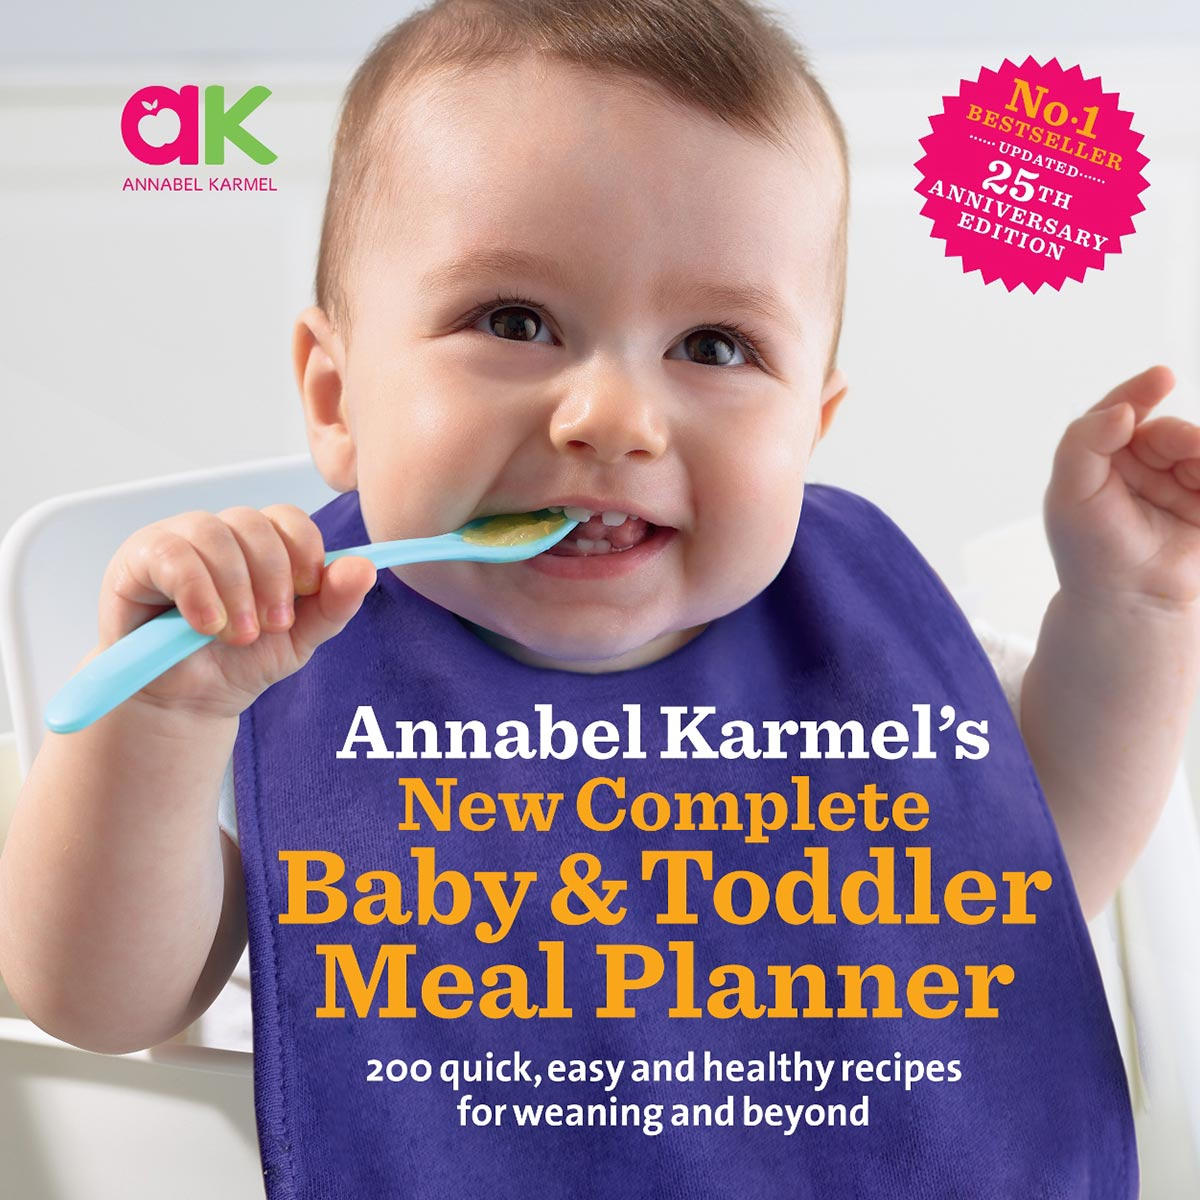 Inspiring Mums - Best Selling Author Annabel Karmel